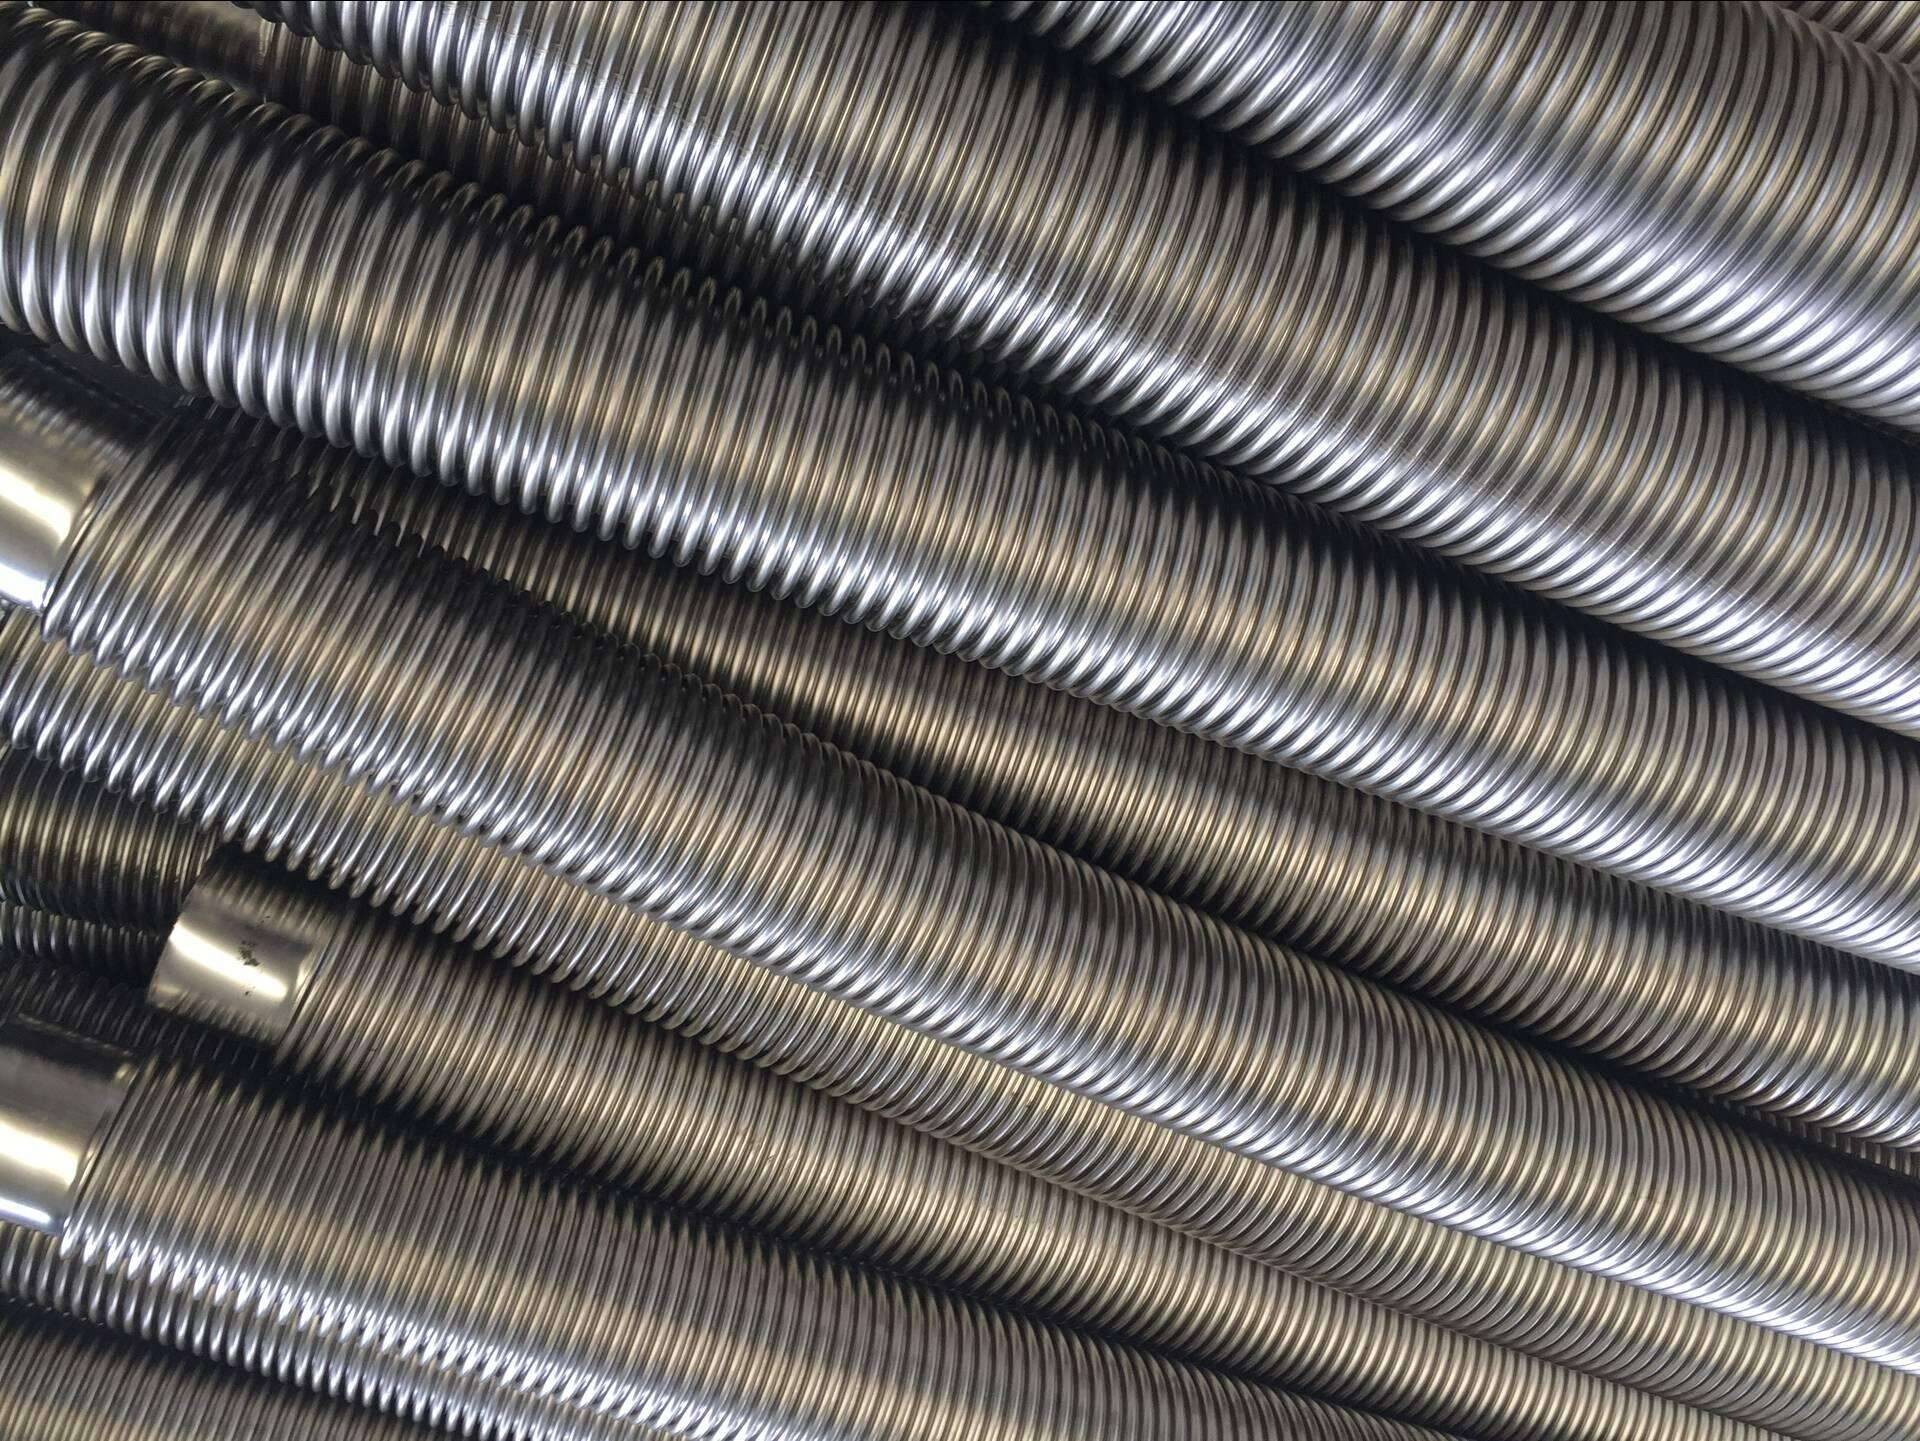 High temperature resistant stainless steel braided flexible metal hose